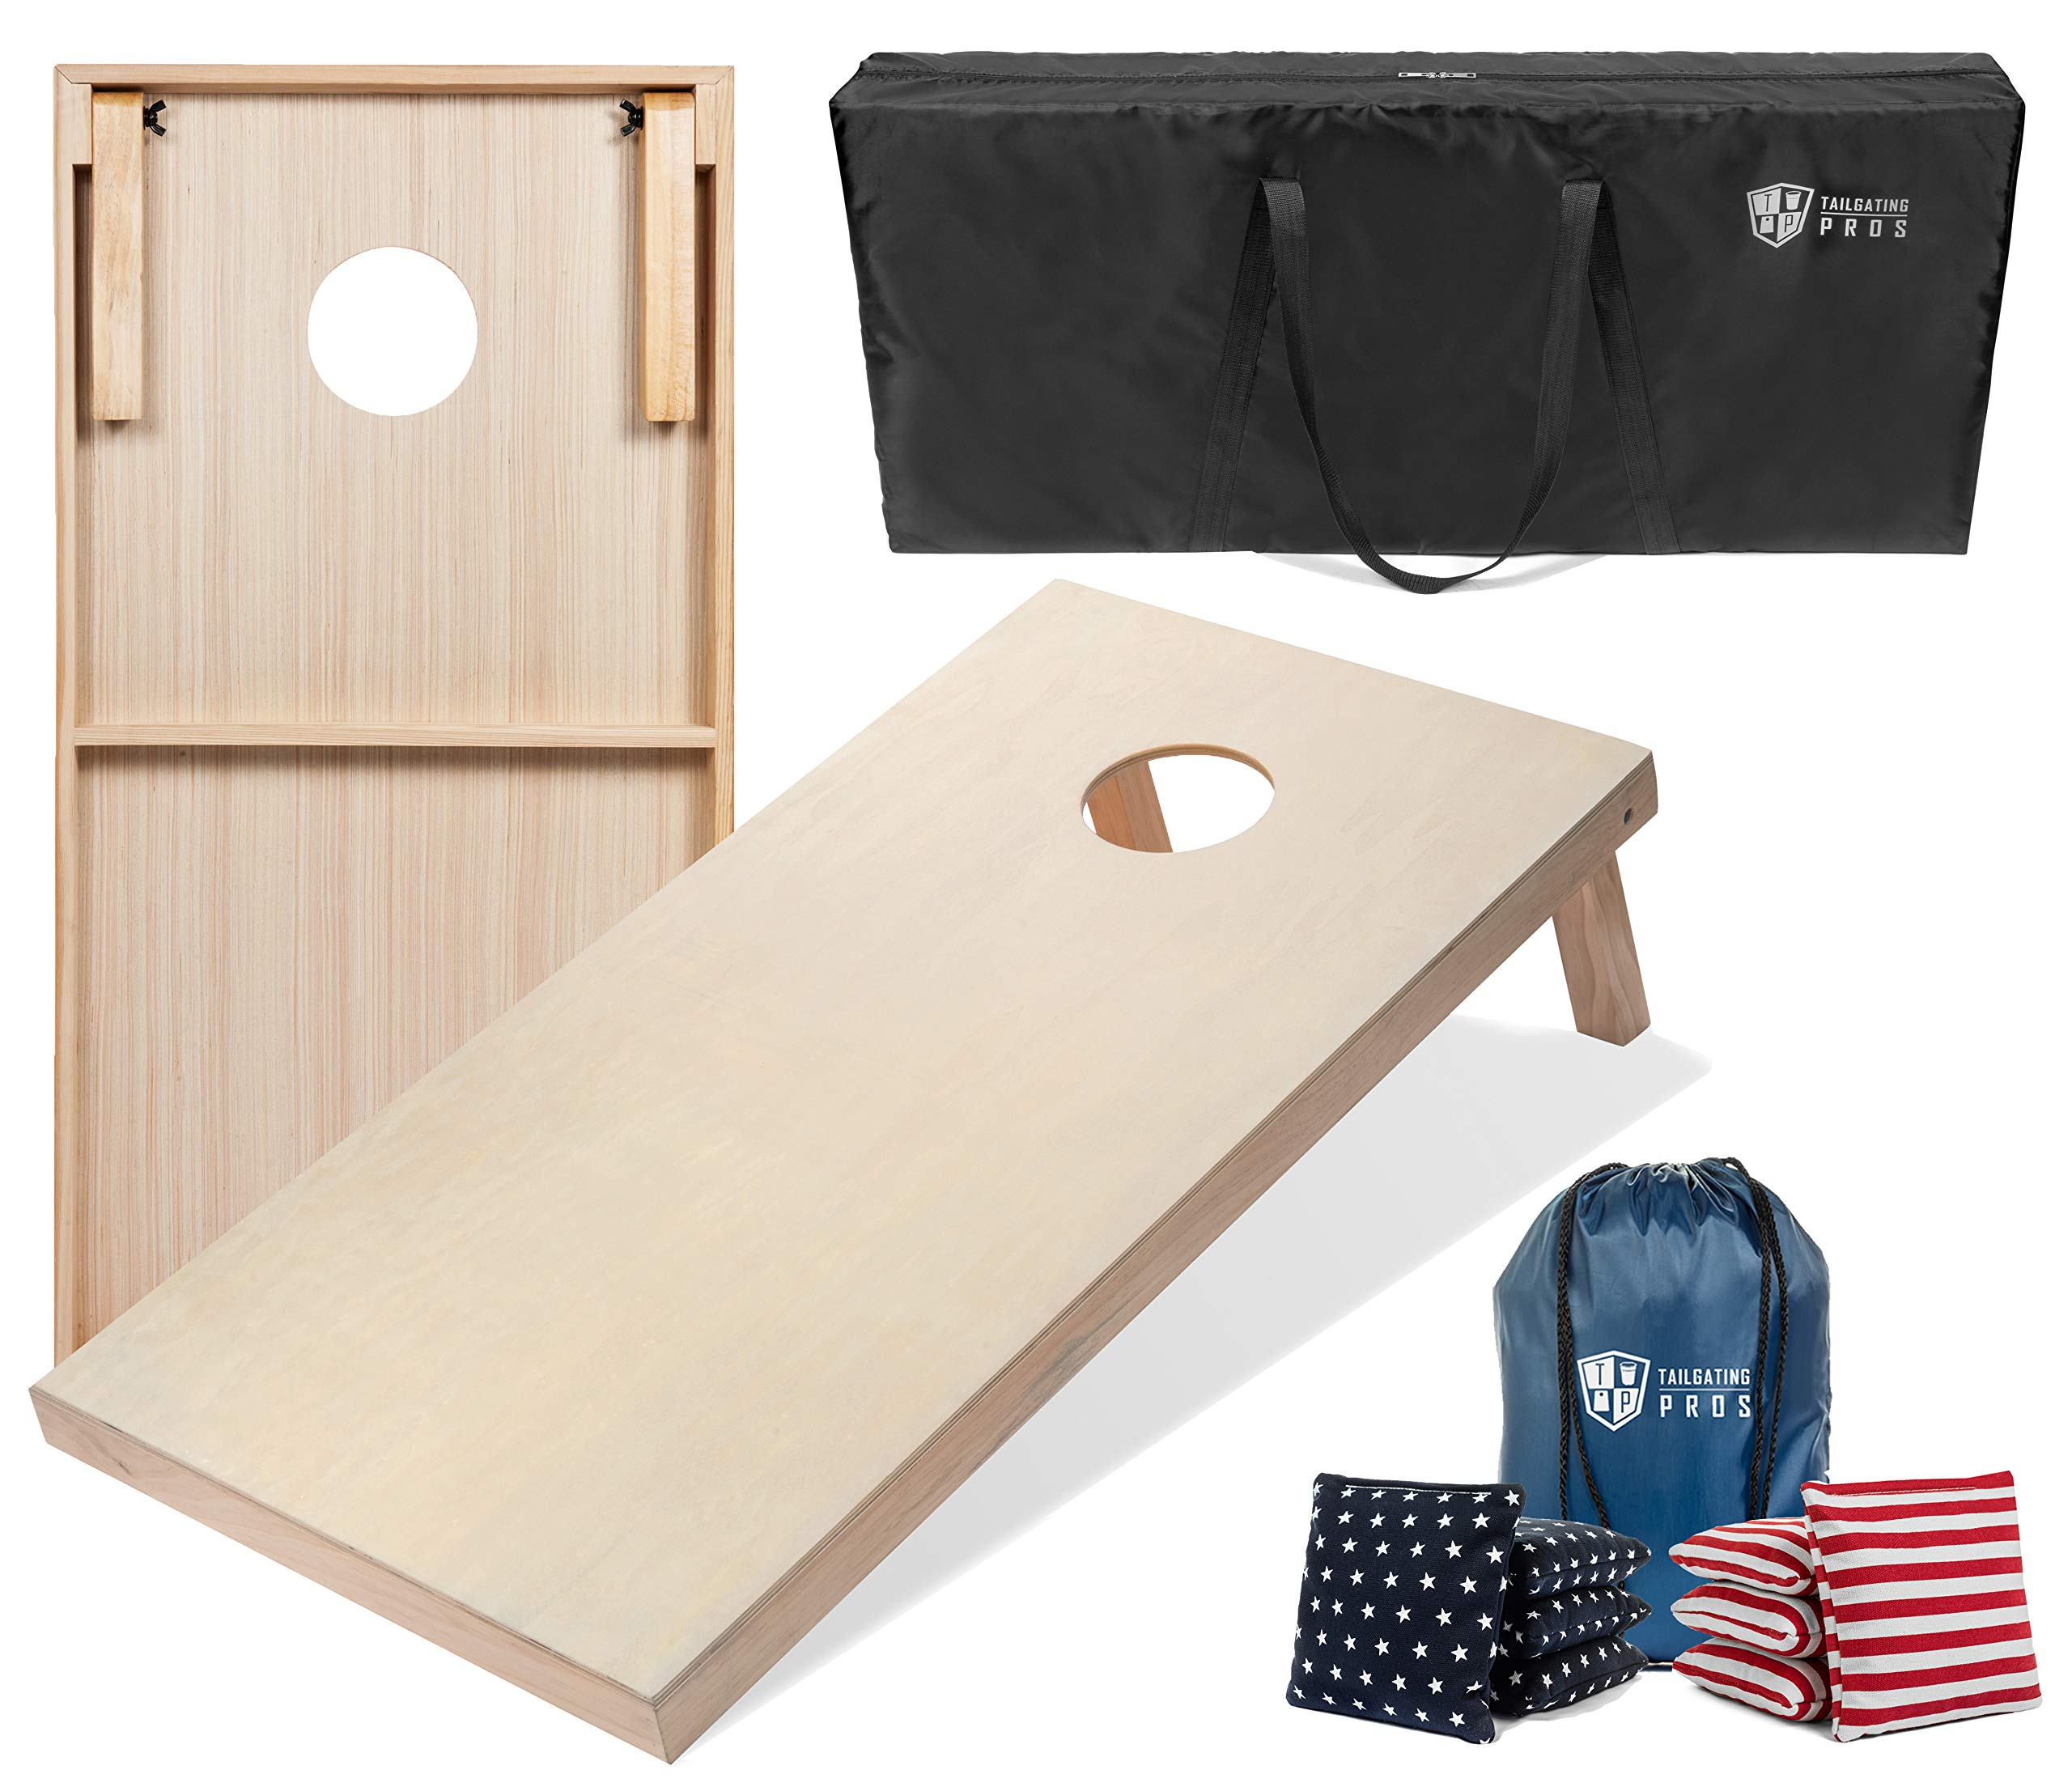 Tailgating Pros 4'x2' Cornhole Boards w/Carrying Case & Set of 8 Cornhole Bags (You Pick Color) 25 Bag Colors! (Stars/Stripes, 4'x2' Boards) by Tailgating Pros